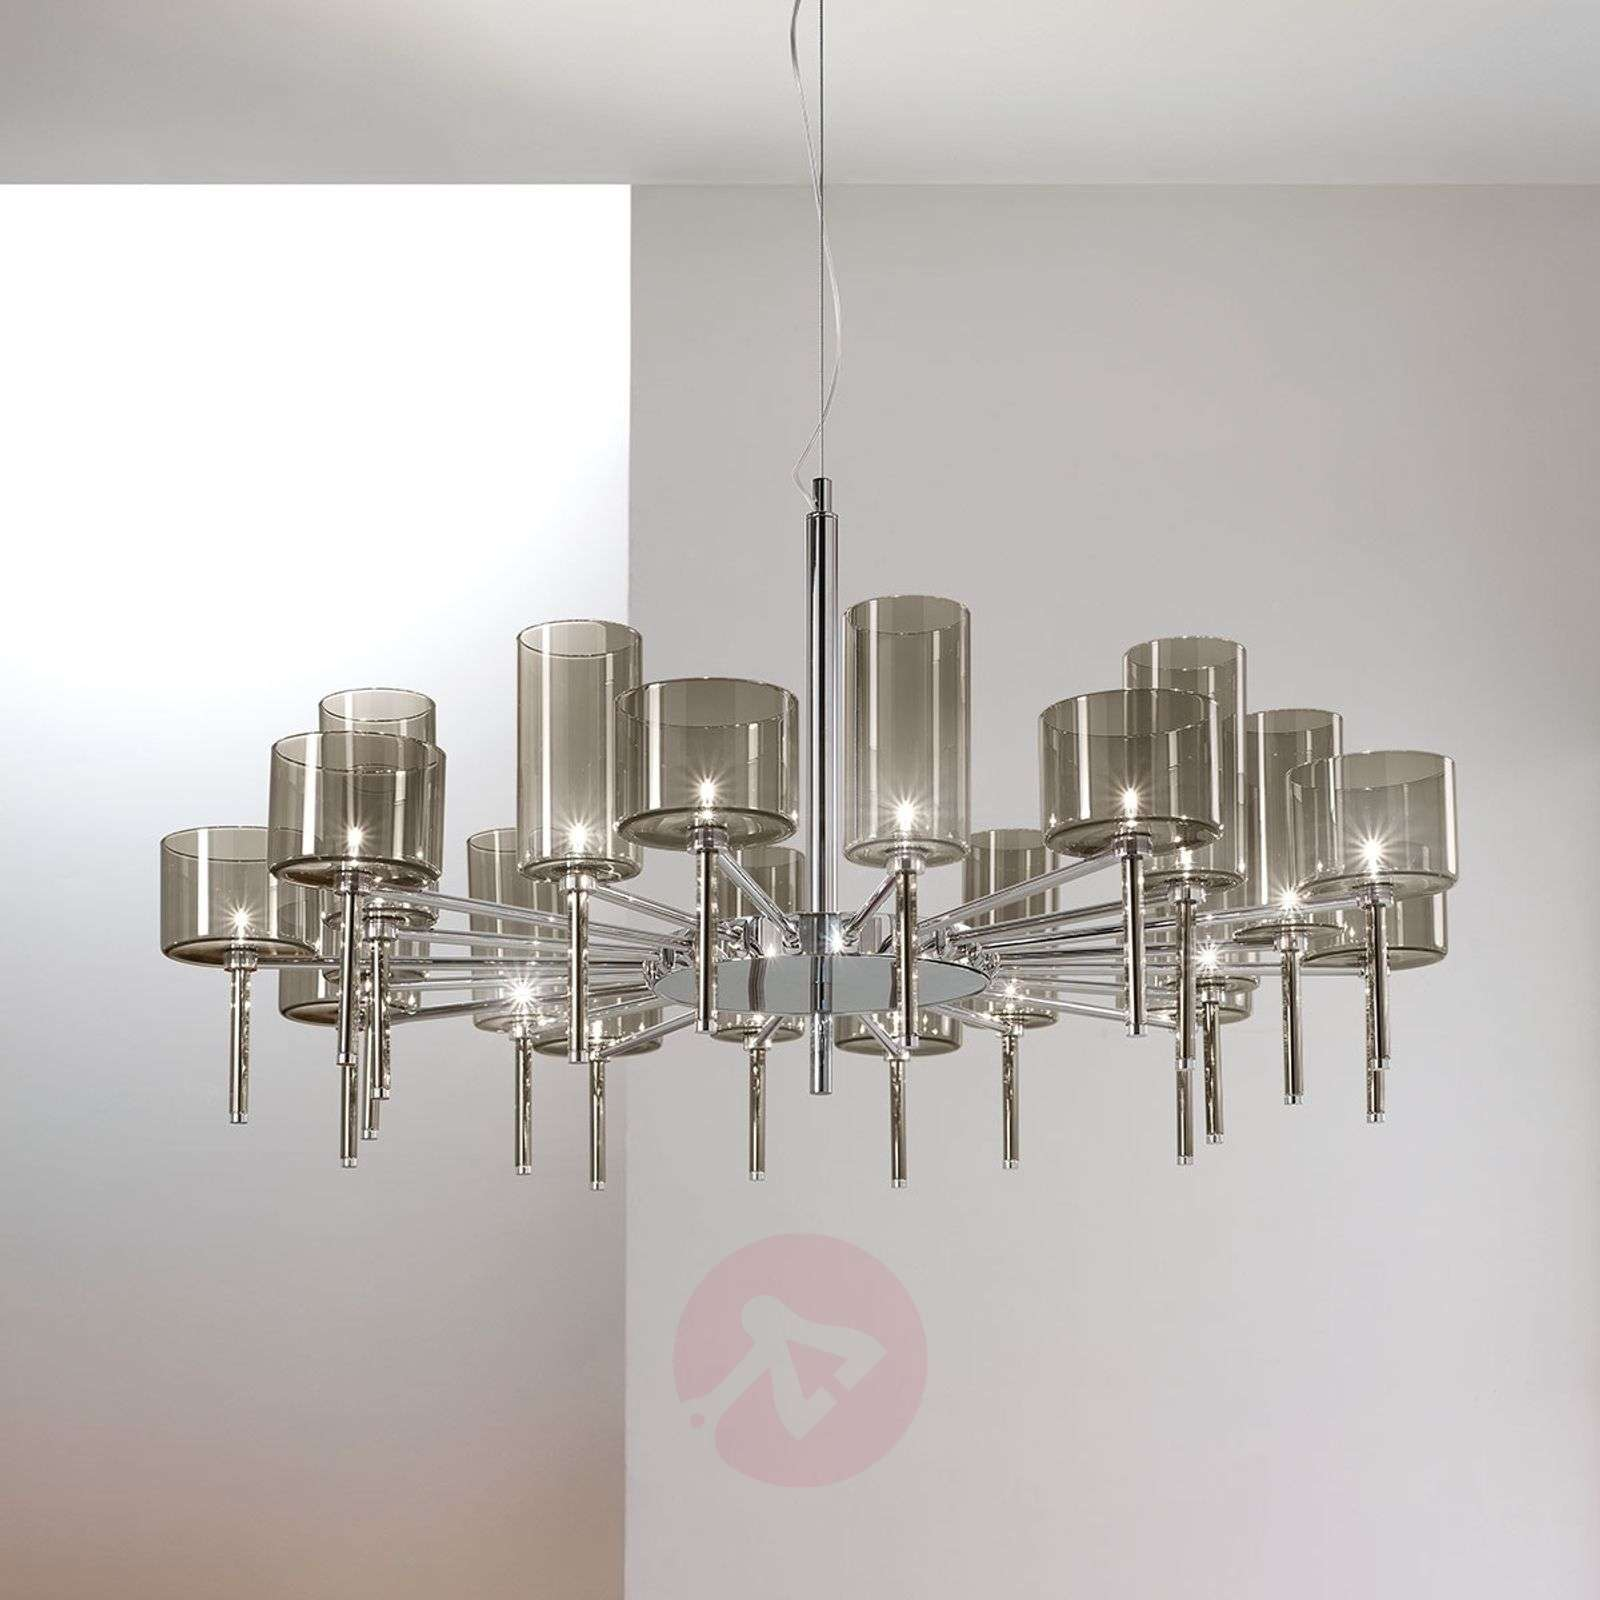 Designer chandelier Spillray with glass shades-1088049-01